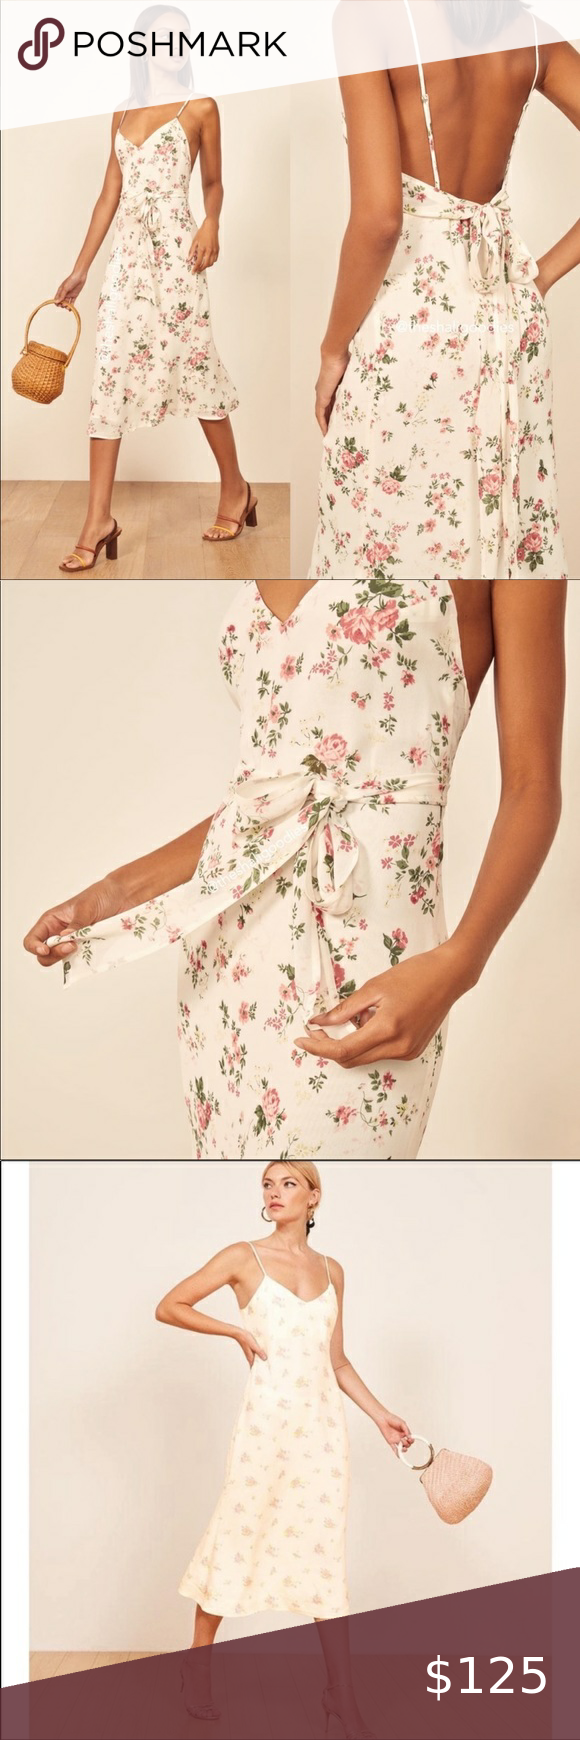 New Reformation Dietrich Floral Midi Dress 8 In 2021 Floral Midi Dress Plus Size Wedding Guest Dresses Dress Question [ png ]